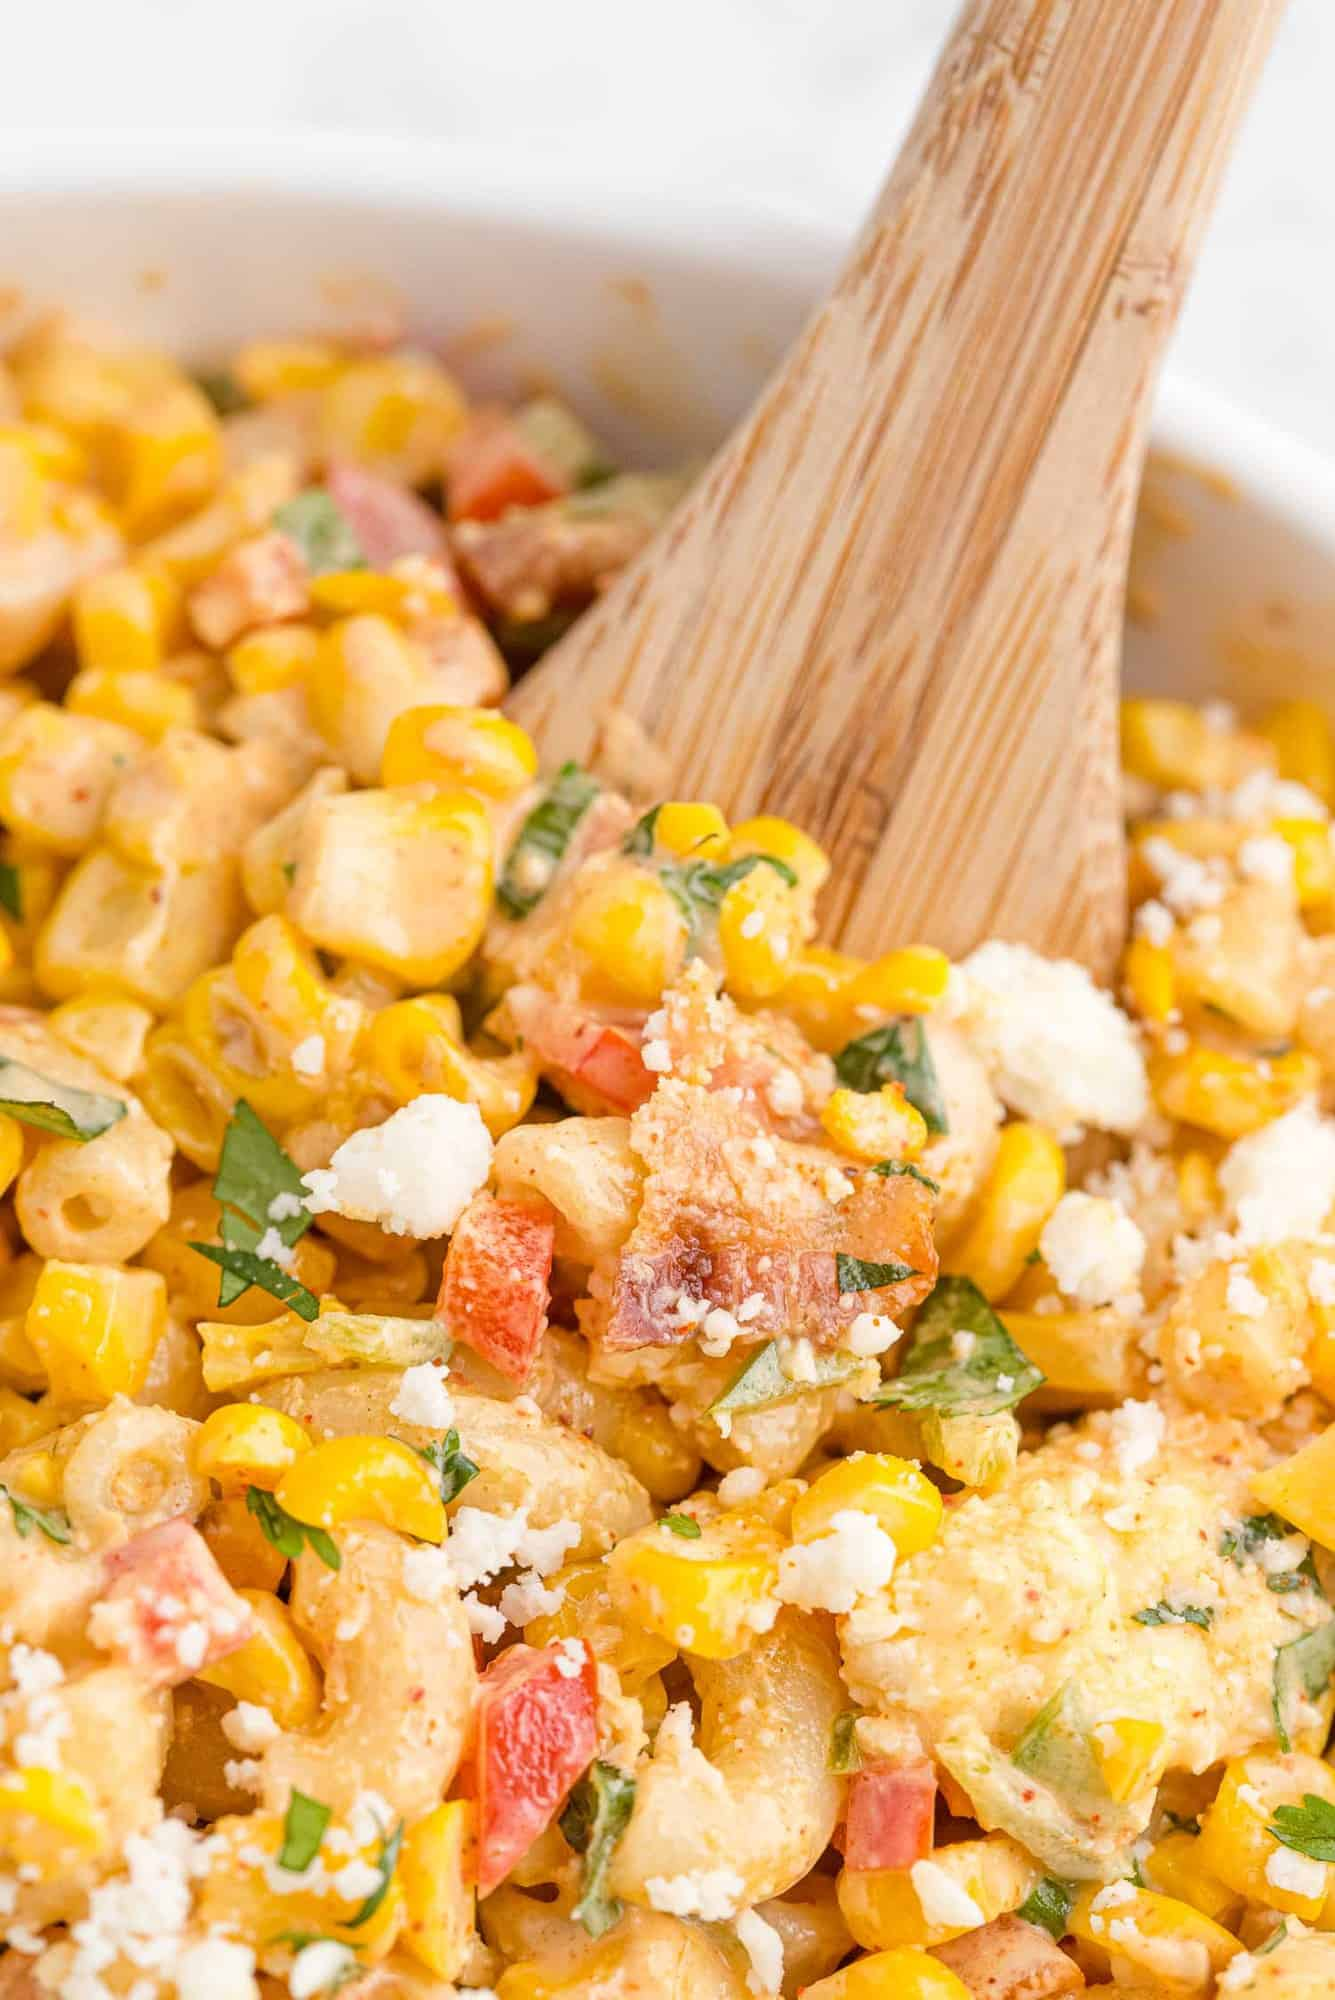 Close up of corn pasta salad with a wooden spoon in it.